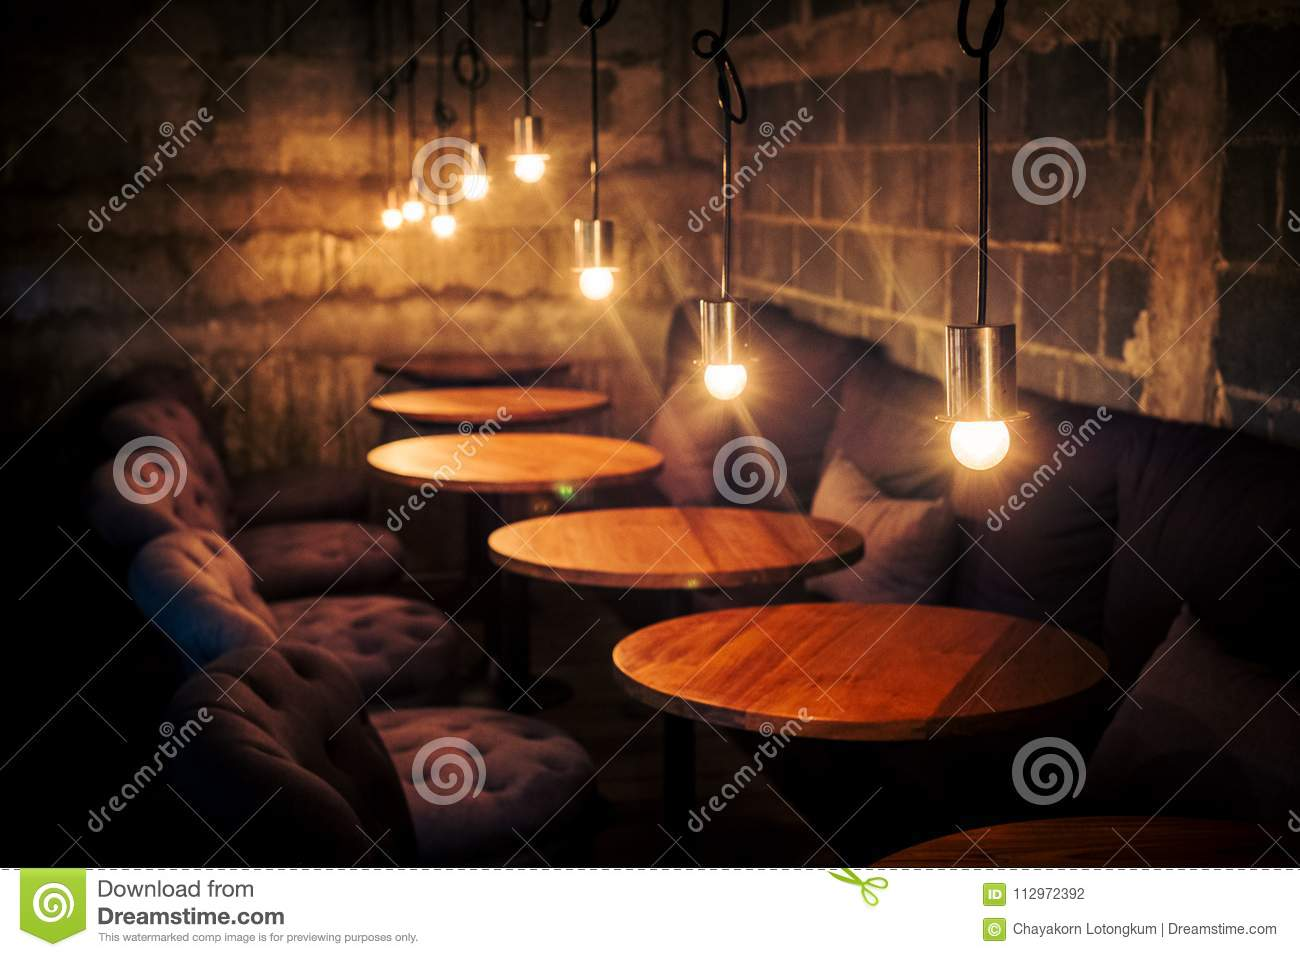 Coffee Cafe Vintage Classic Design With Light Stock Photo Image Of Candlelight Background 112972392